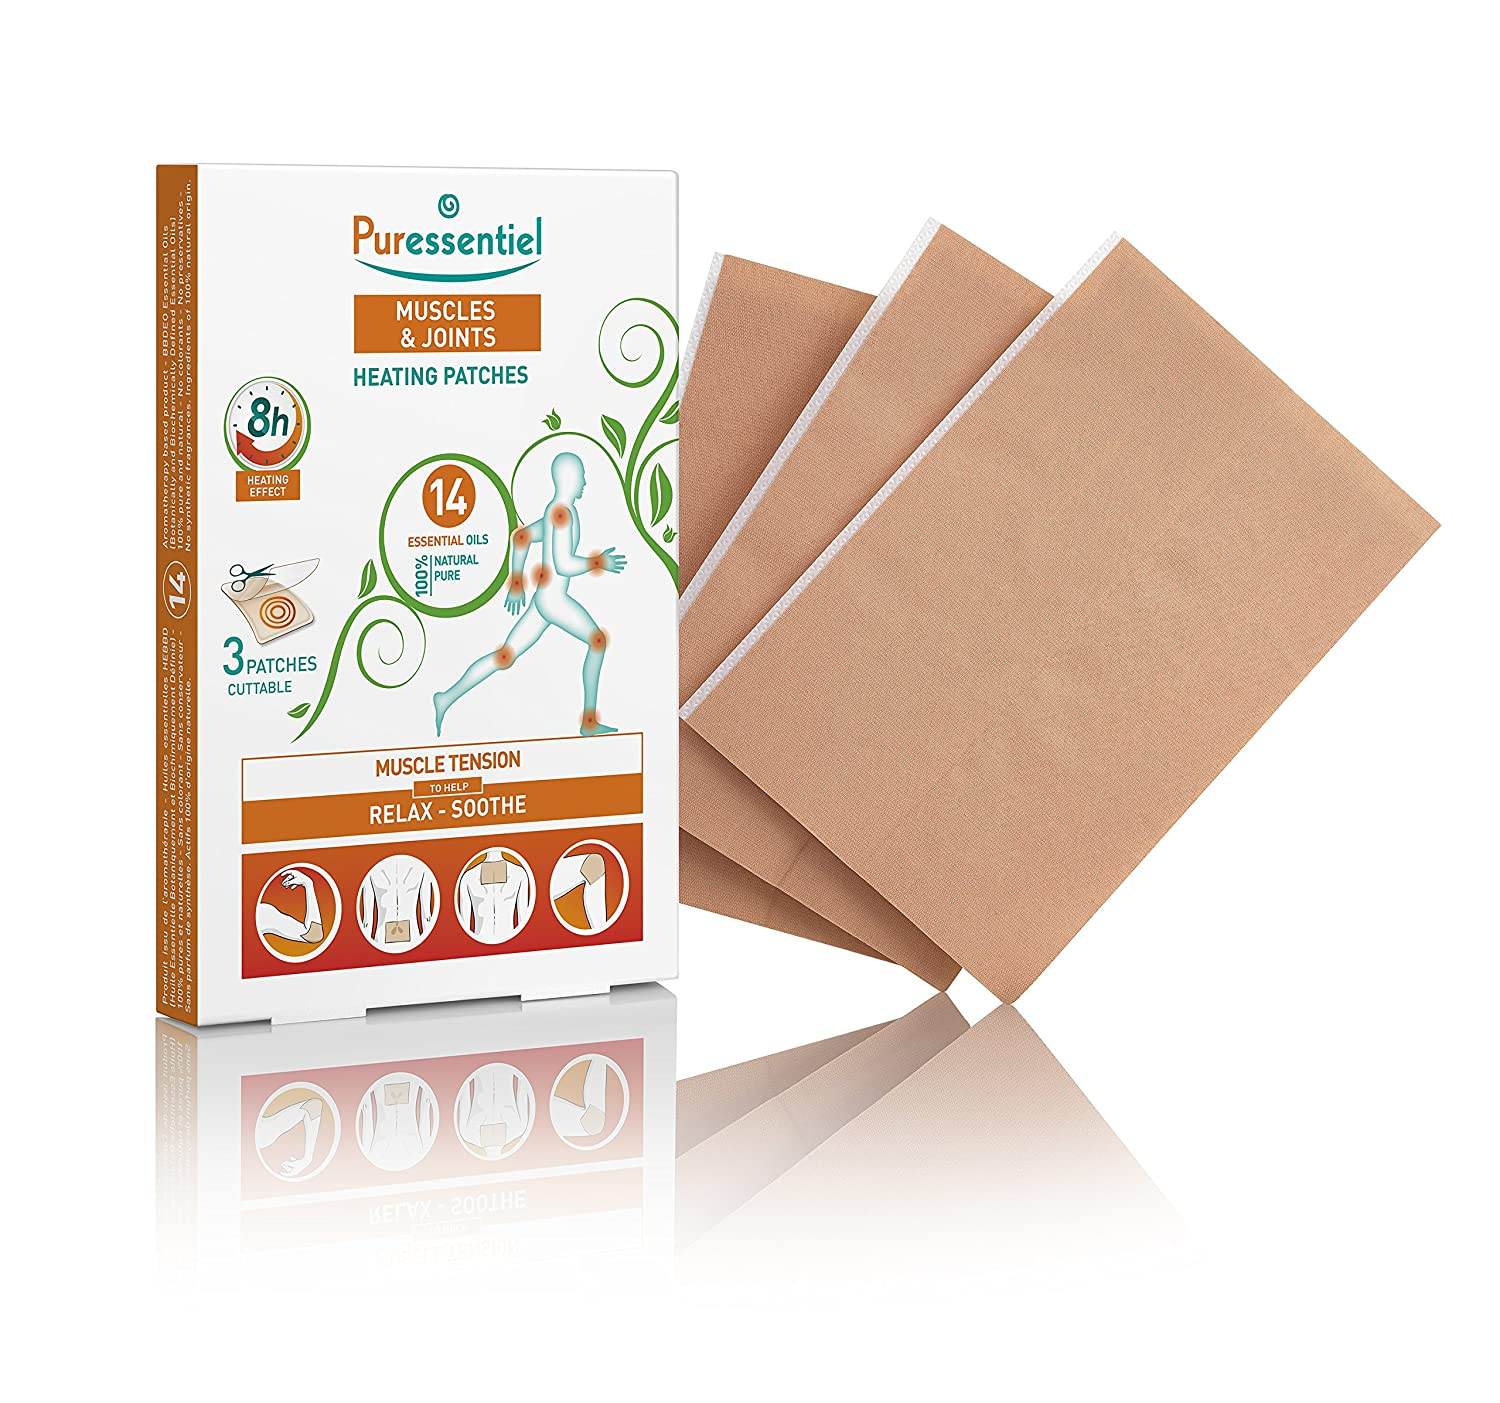 Puressentiel Joints 3 Heating Patches with 14 Essential Oils